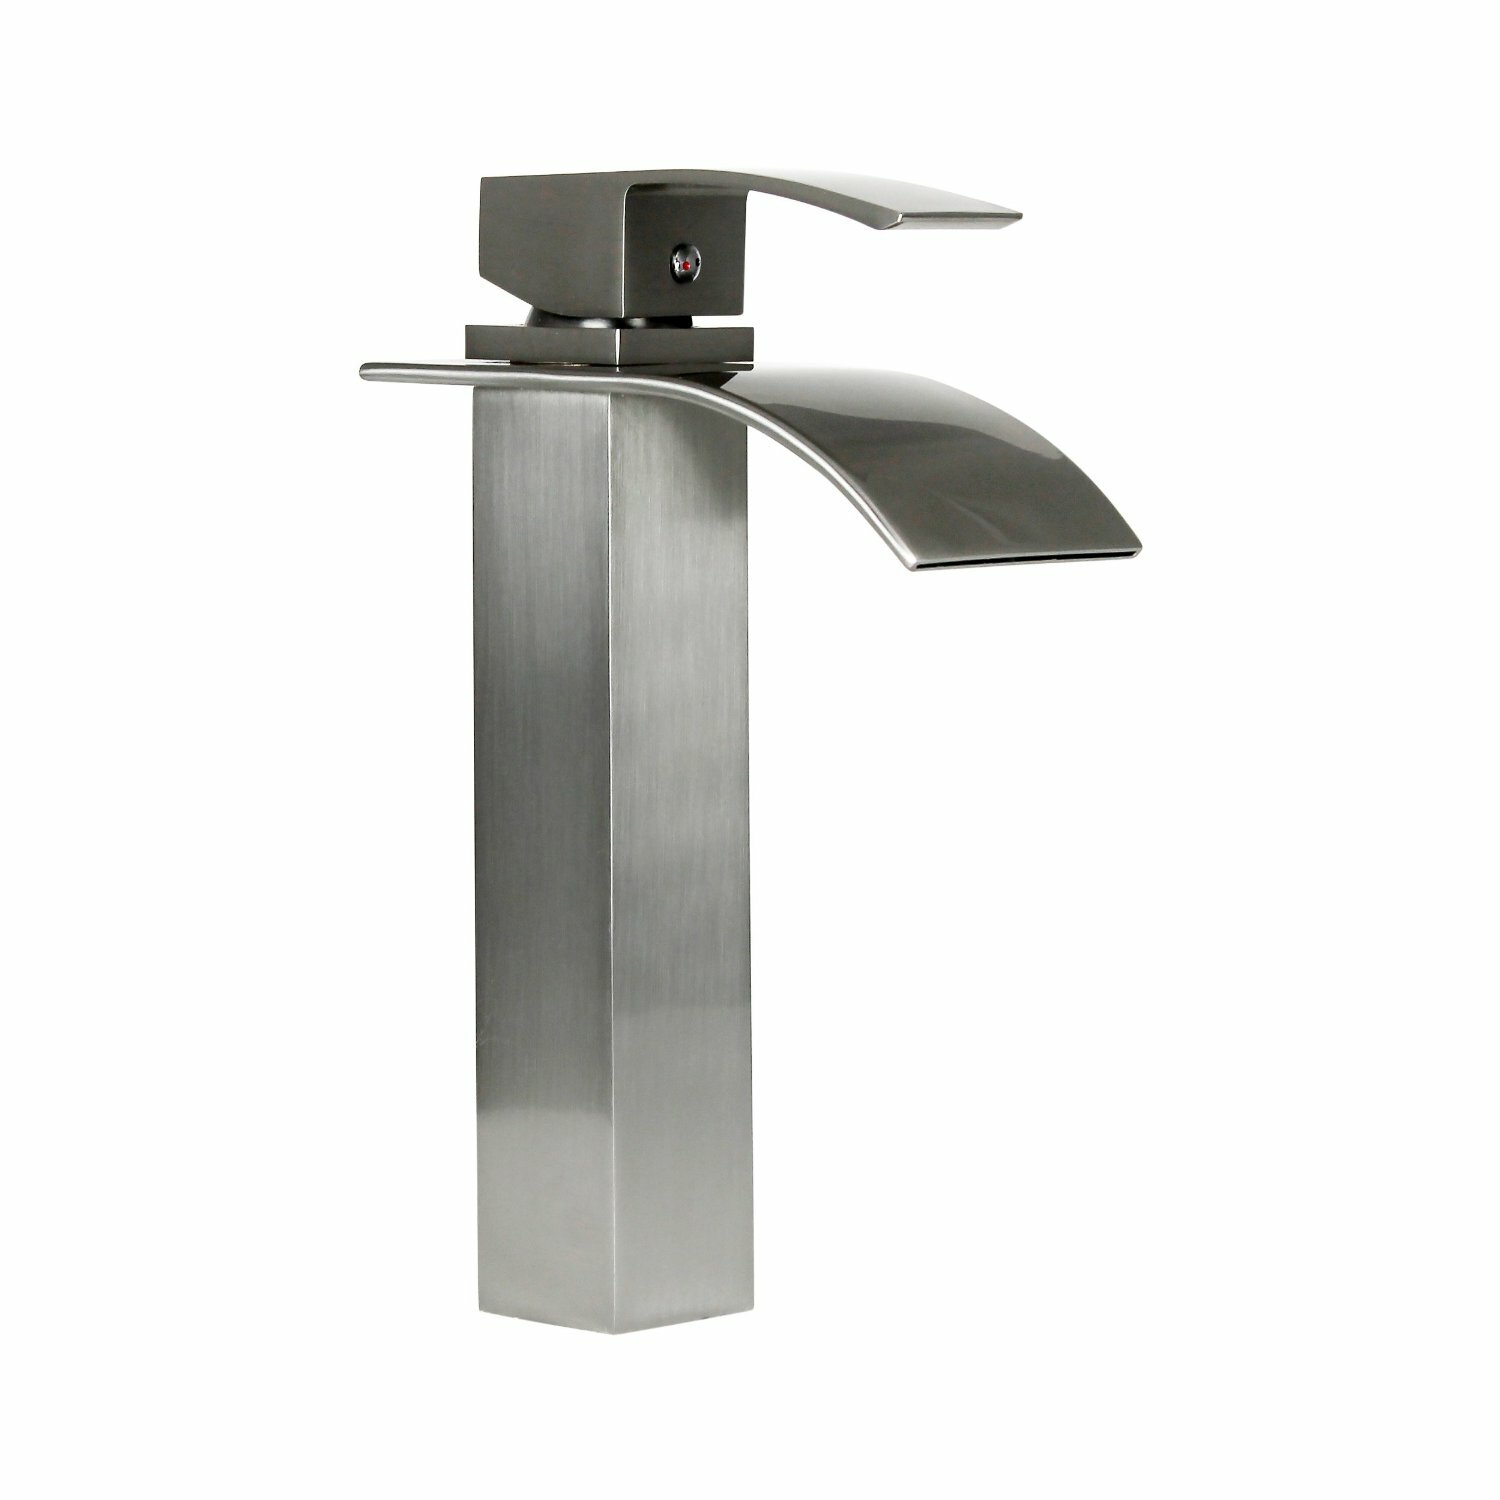 Vessel Bowl Faucets : Wye Modern Bathroom Vessel Sink Faucet by Dyconn Faucet